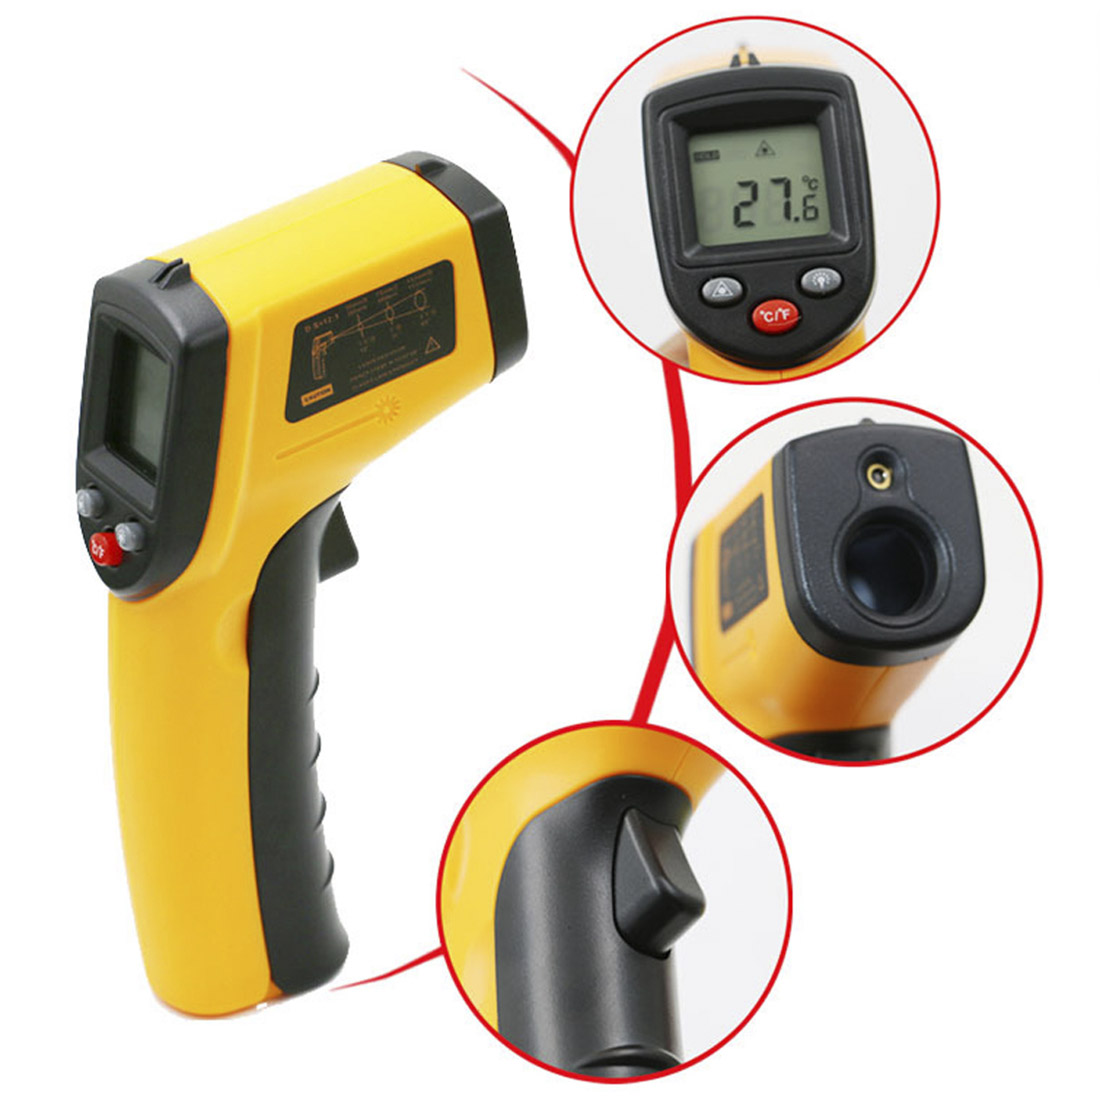 Handheld Digital Thermomete Non Contact Infrared Pyrometer IR Laser Temperature Meter Business & Industrial  Point Gun -50~380C